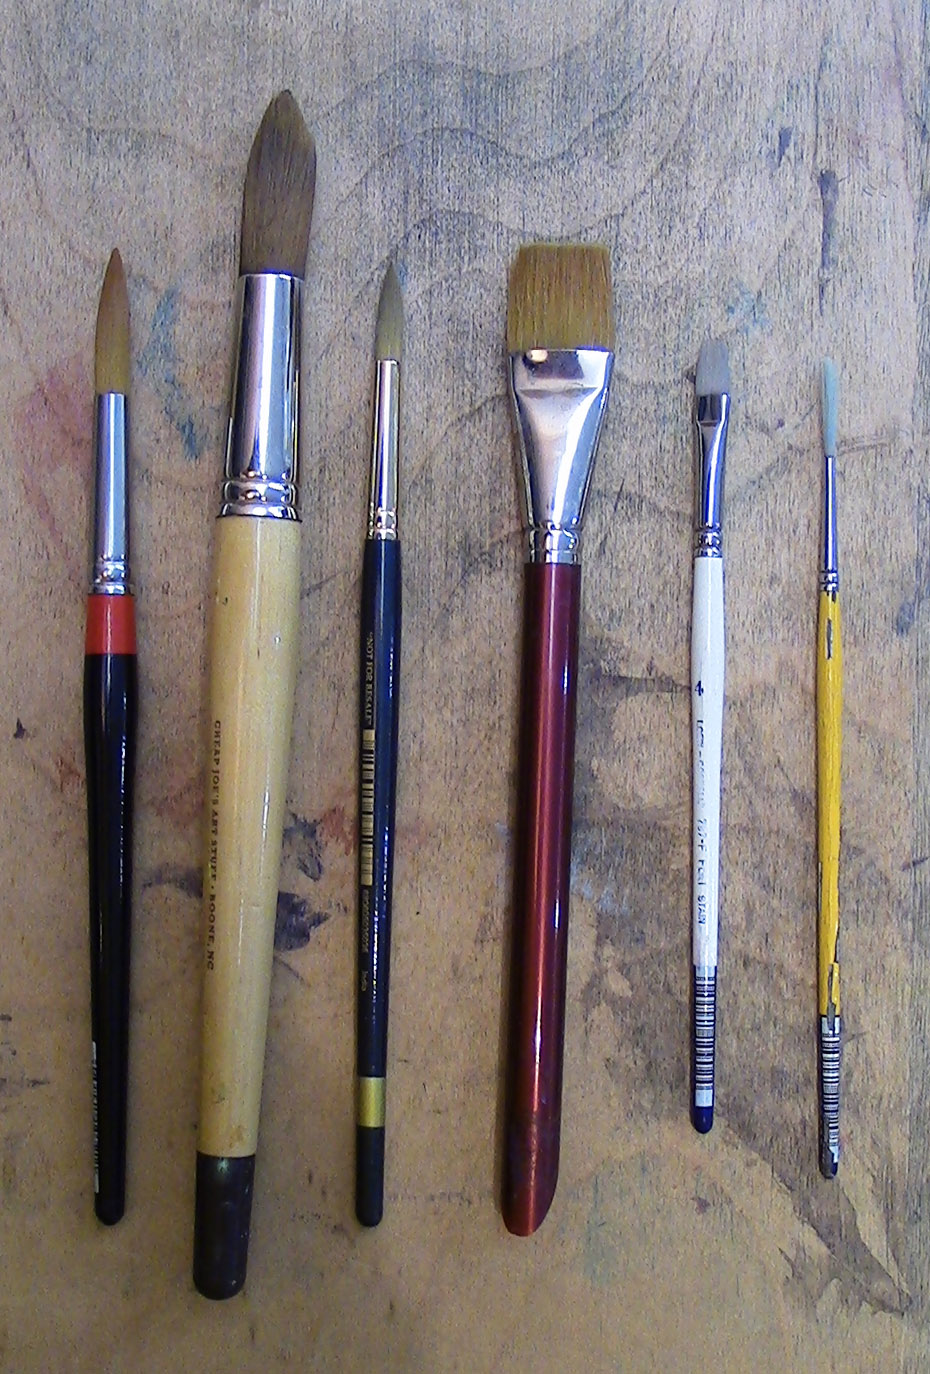 18_10_1 Basic Watercolor Painting Materials_Brushes